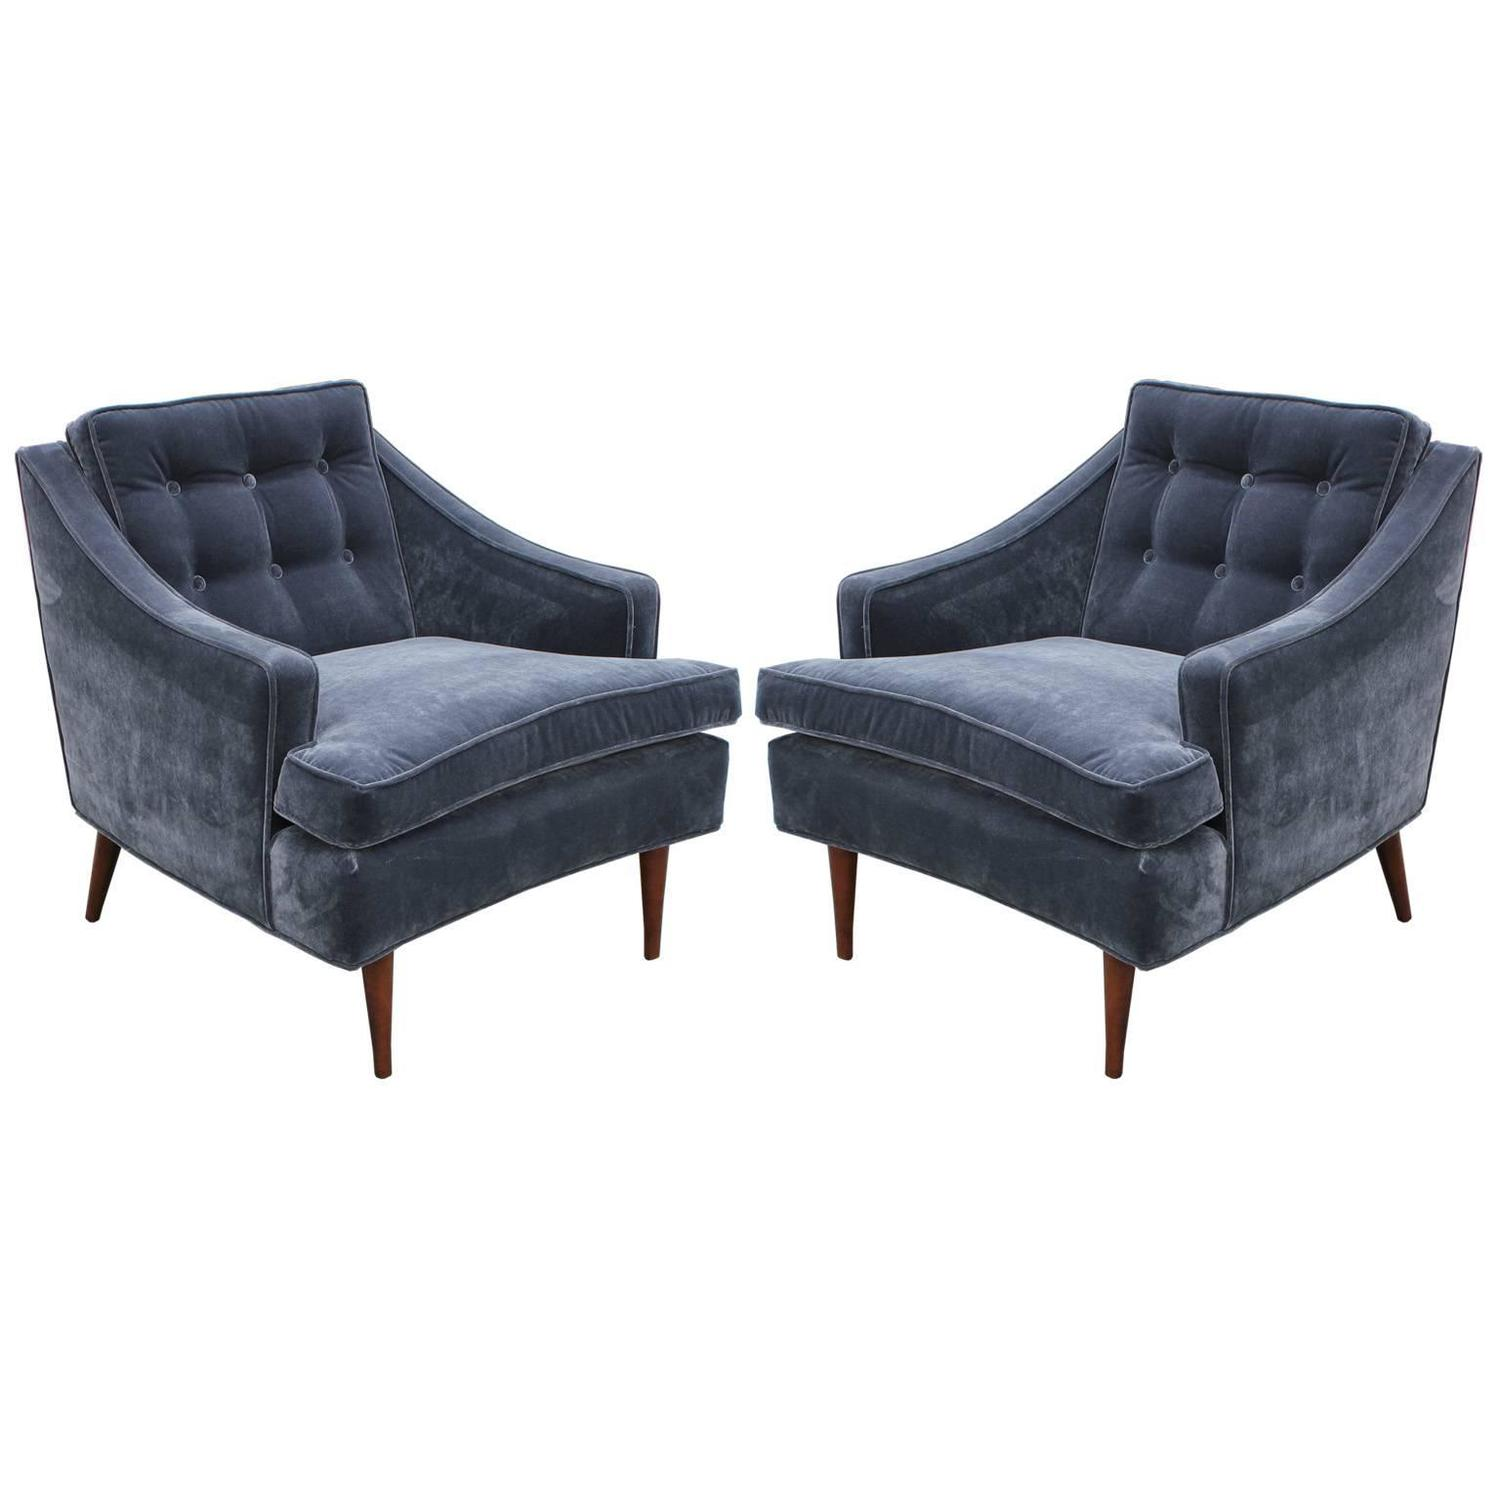 Wonderful Pair of Curved Grey Velvet Tufted Lounge Chairs at 1stdibs